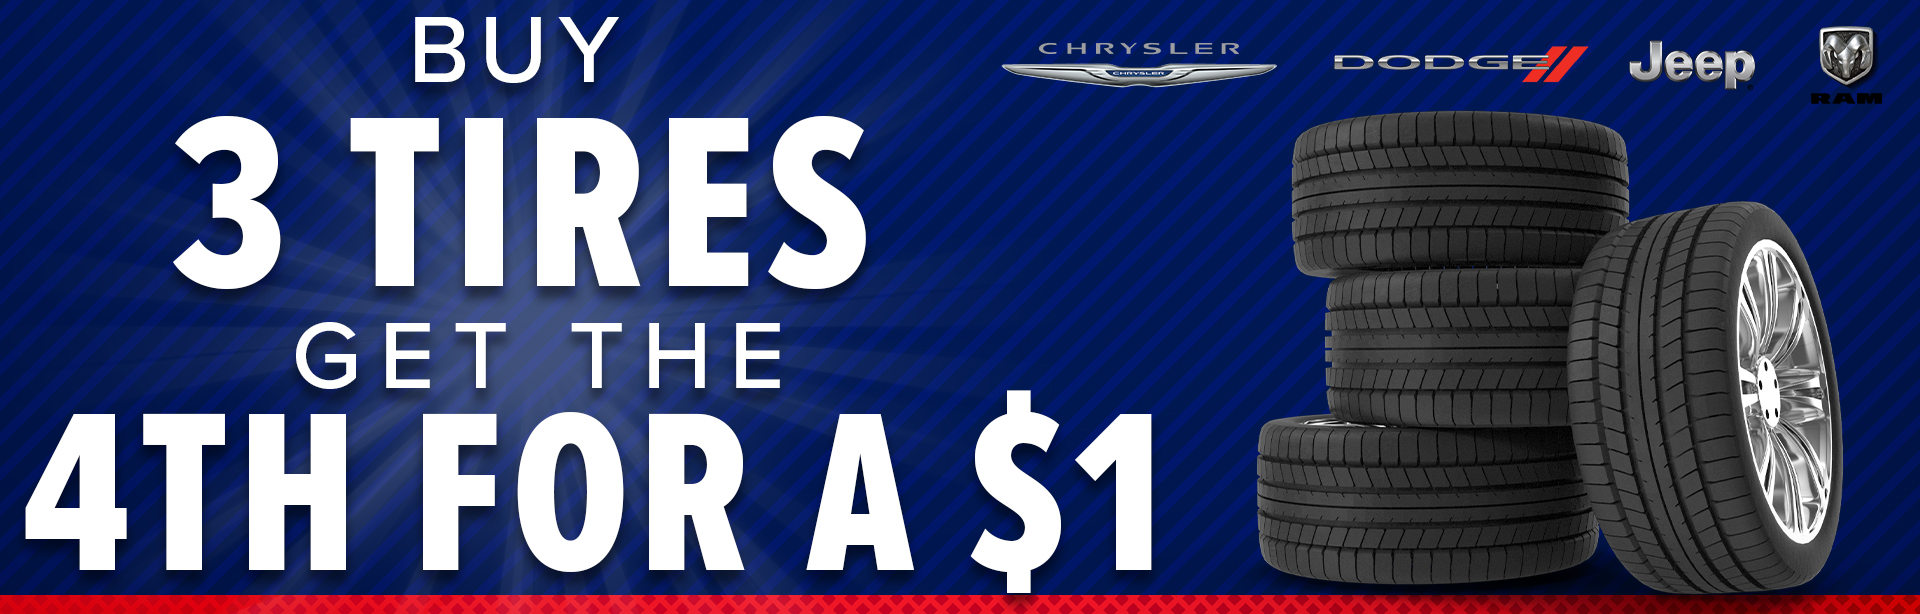 Buy 3 Tires get the 4th for a $1